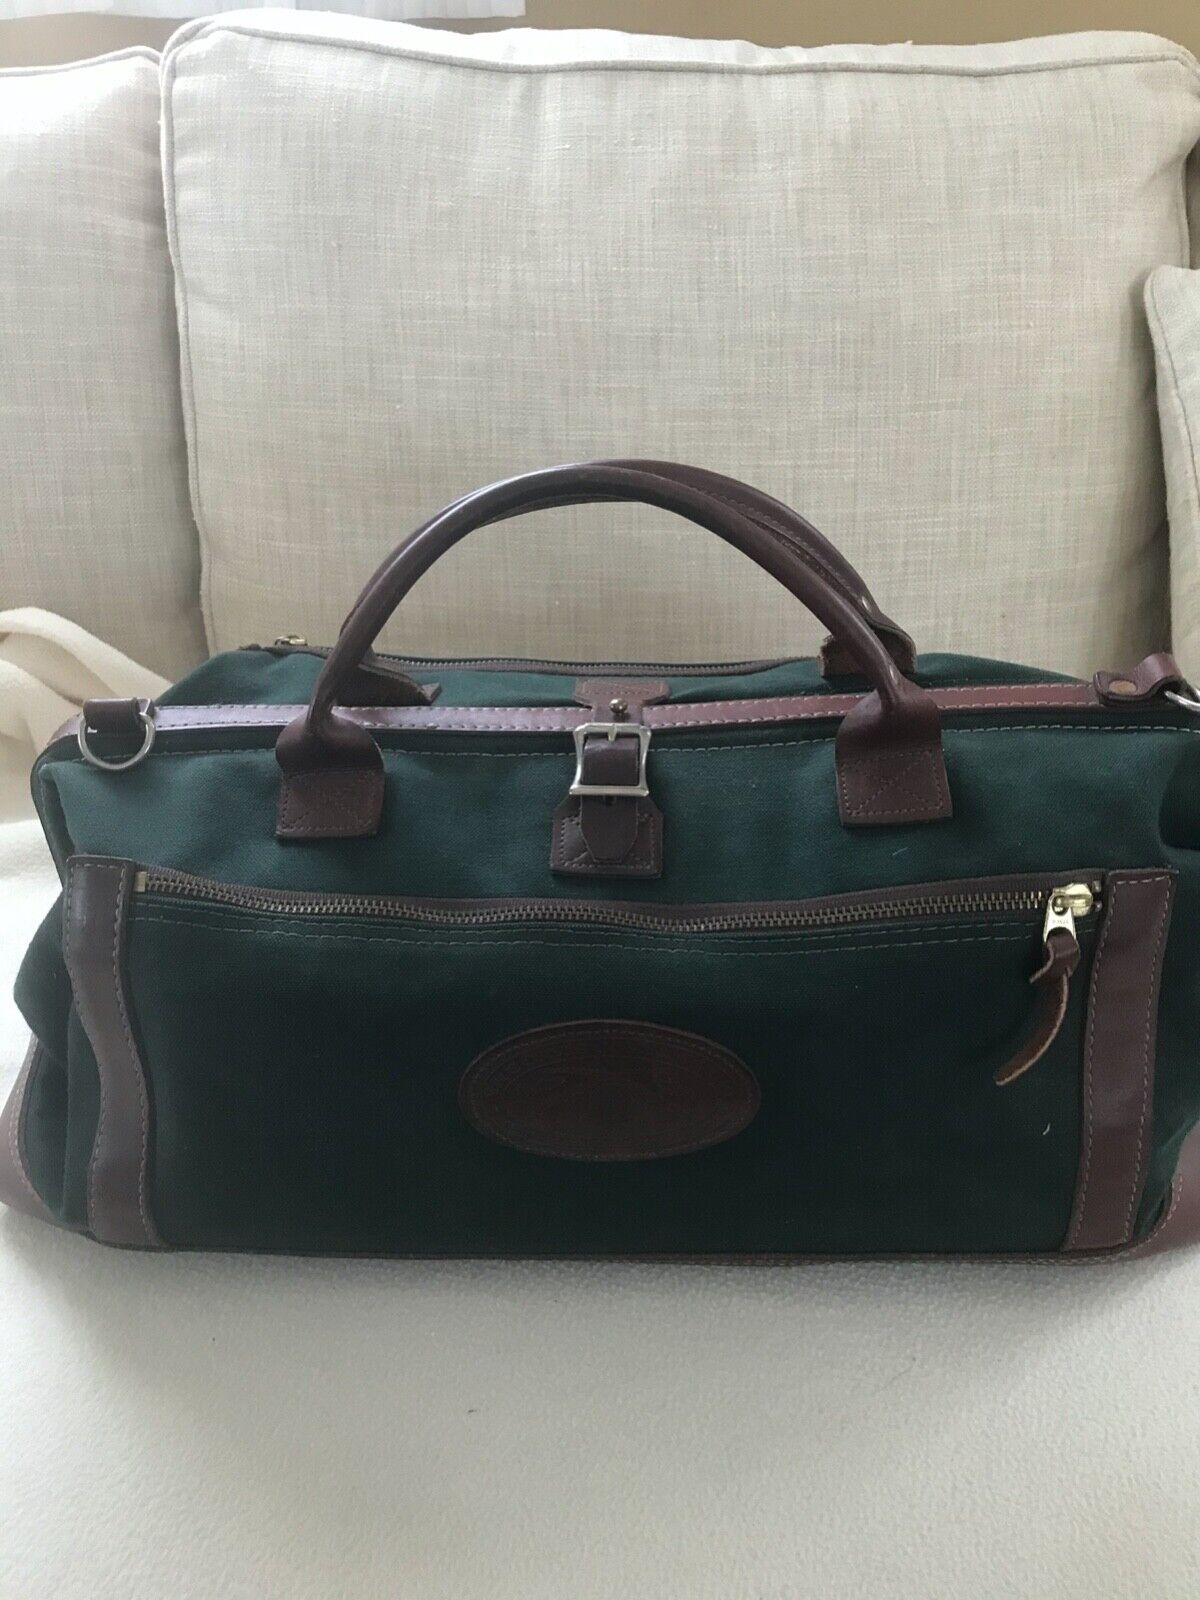 ORVIS BATTENKILL DUFFLE BAG, 20 Green Canvas And Leather - $65.00